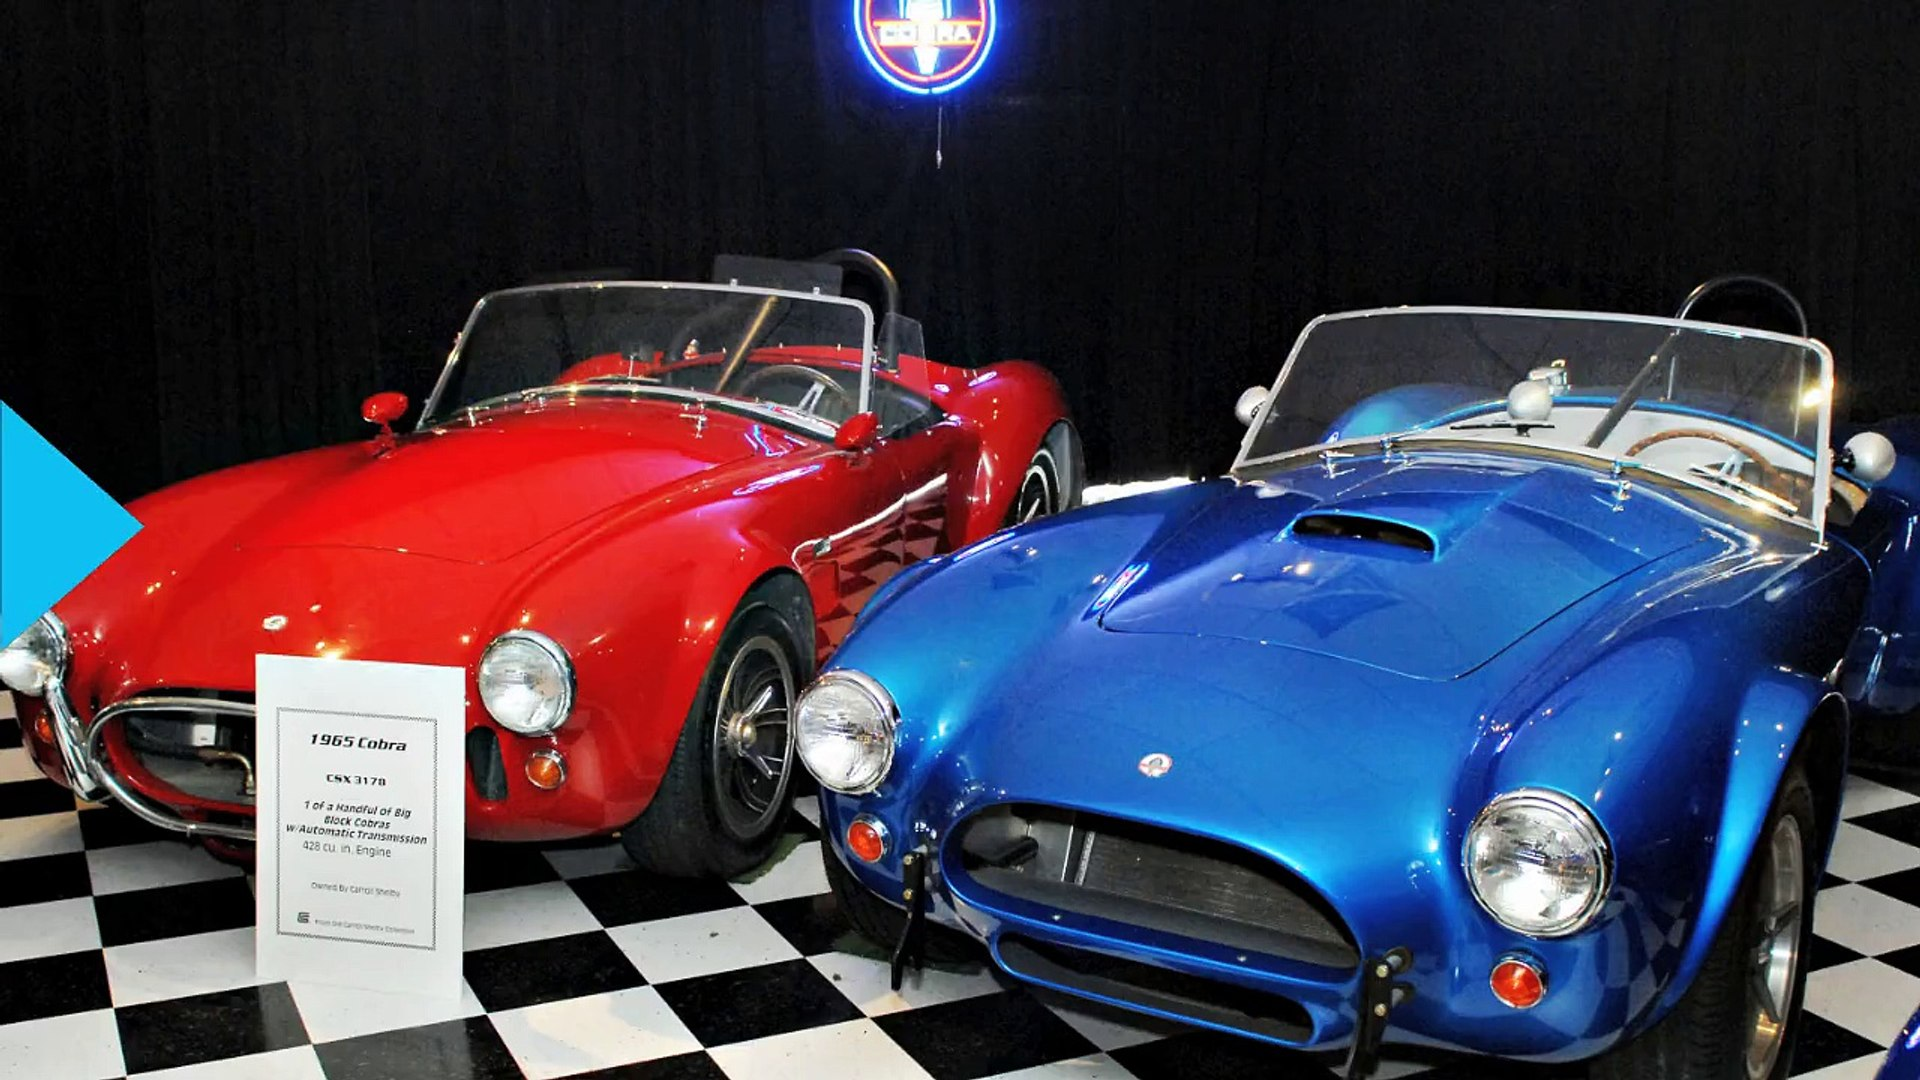 50th Anniversary Shelby Cobra 427 Announced, 50 Examples To Be Sold